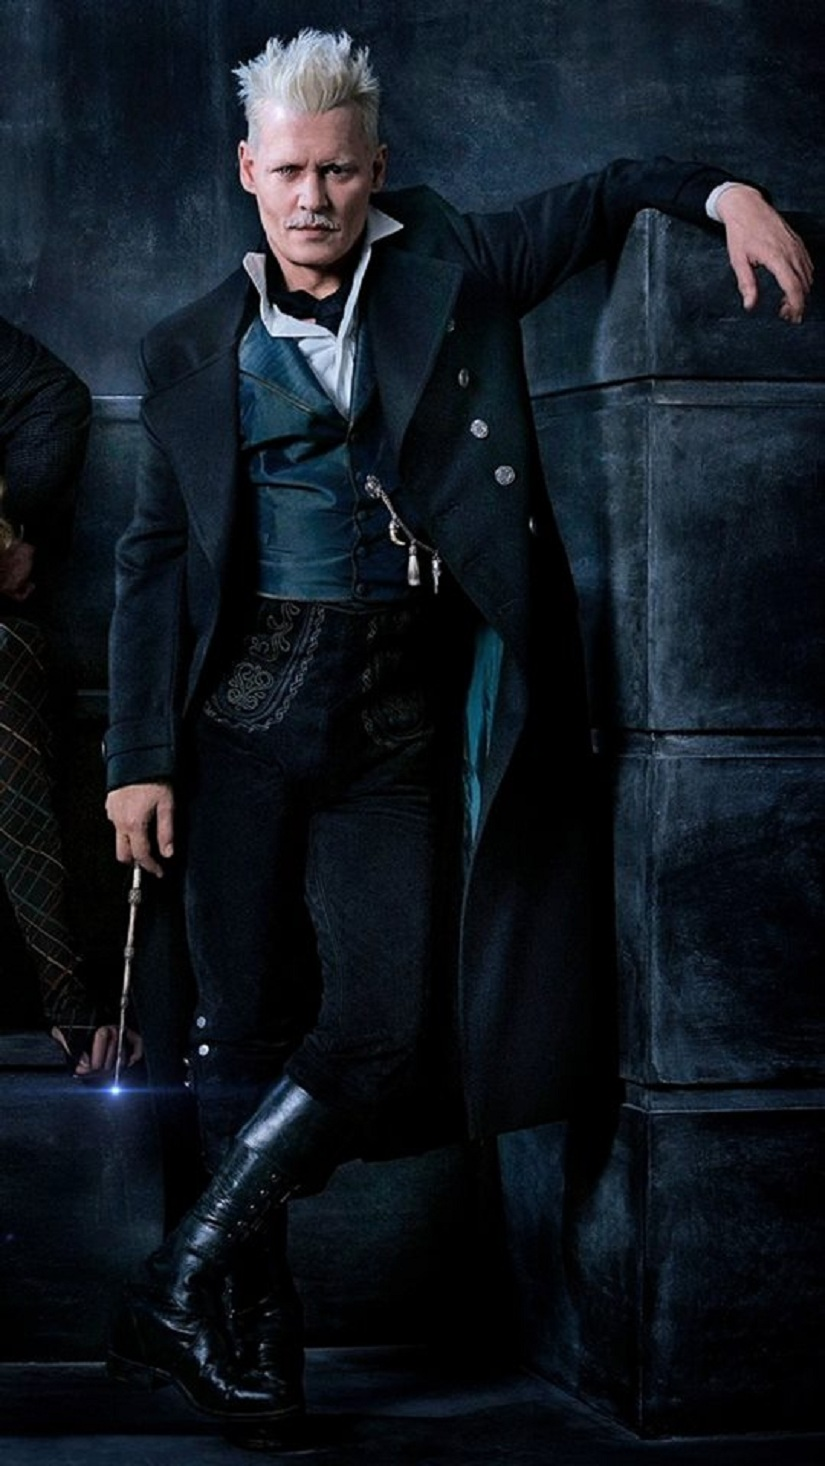 Johnny Depp as Gellert Grindelwald in Fantastic Beasts 2: Image via Facebook